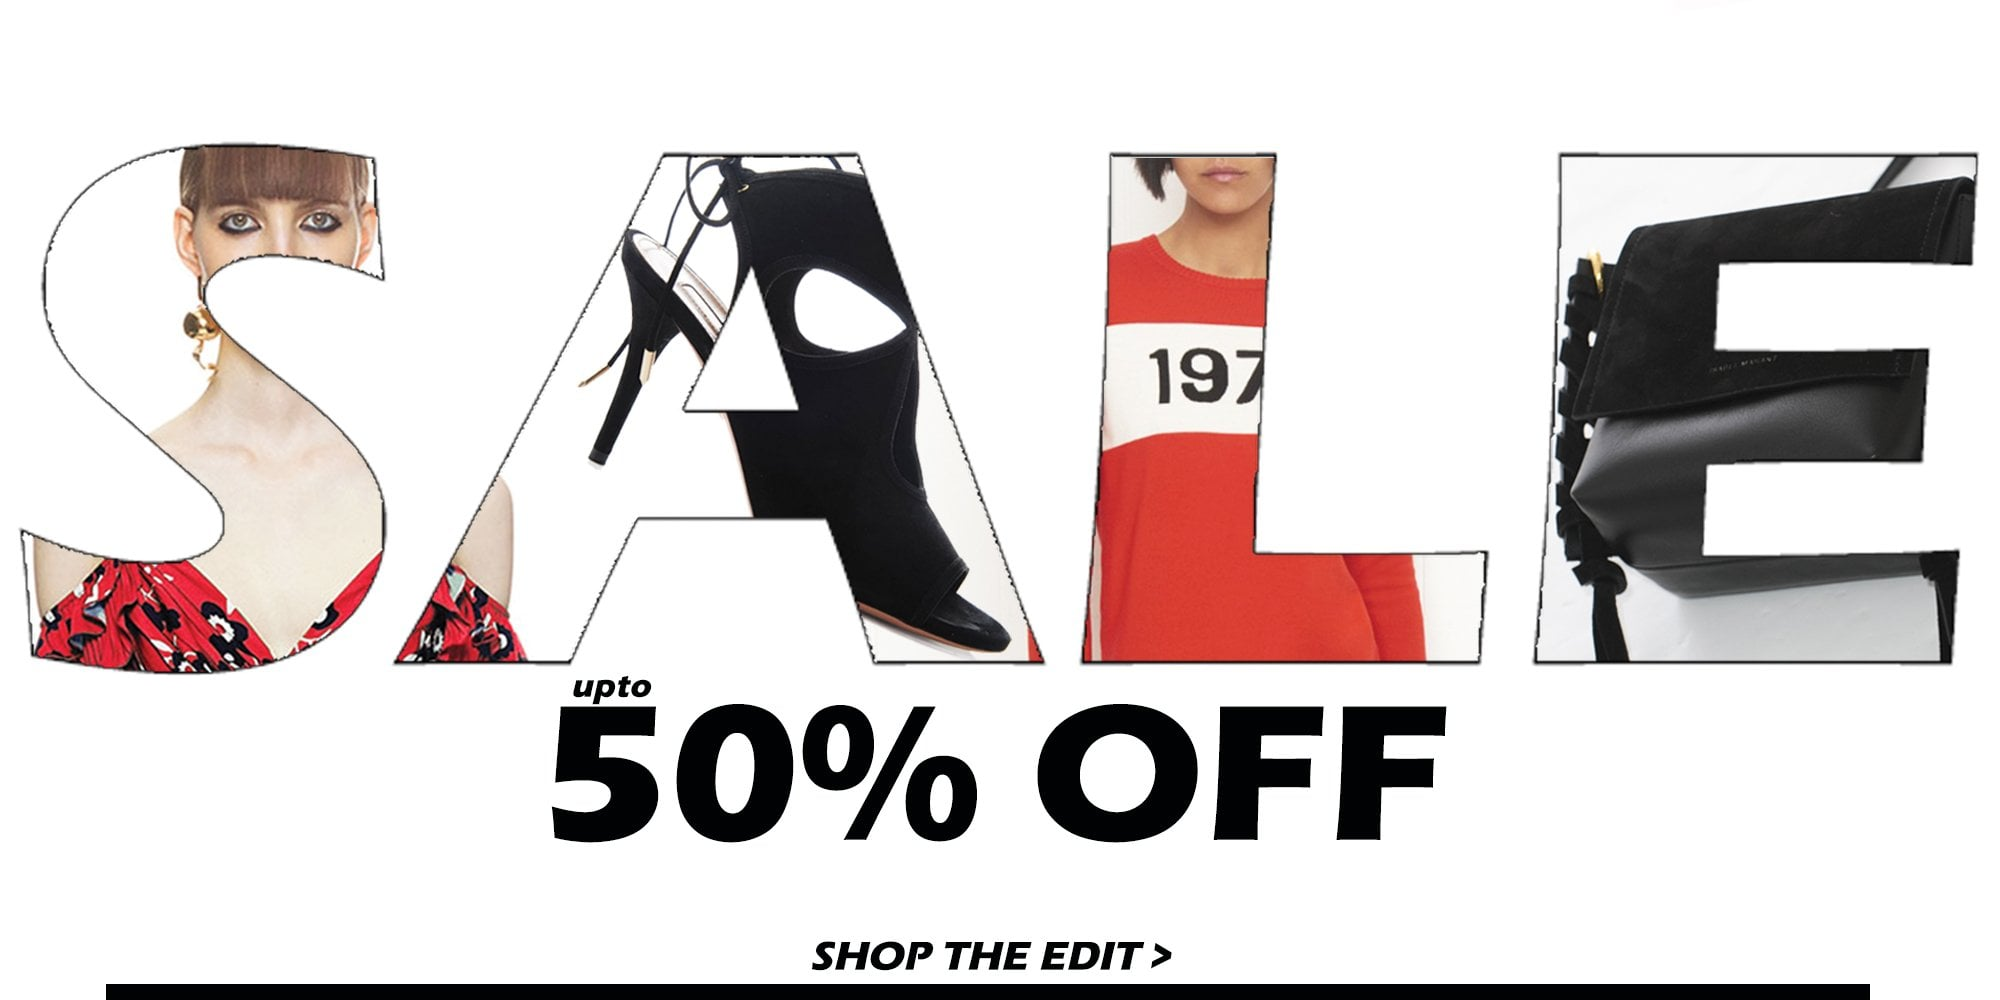 Sale now on! upto 50% off designers you love, shop must have pieces at amazing prices